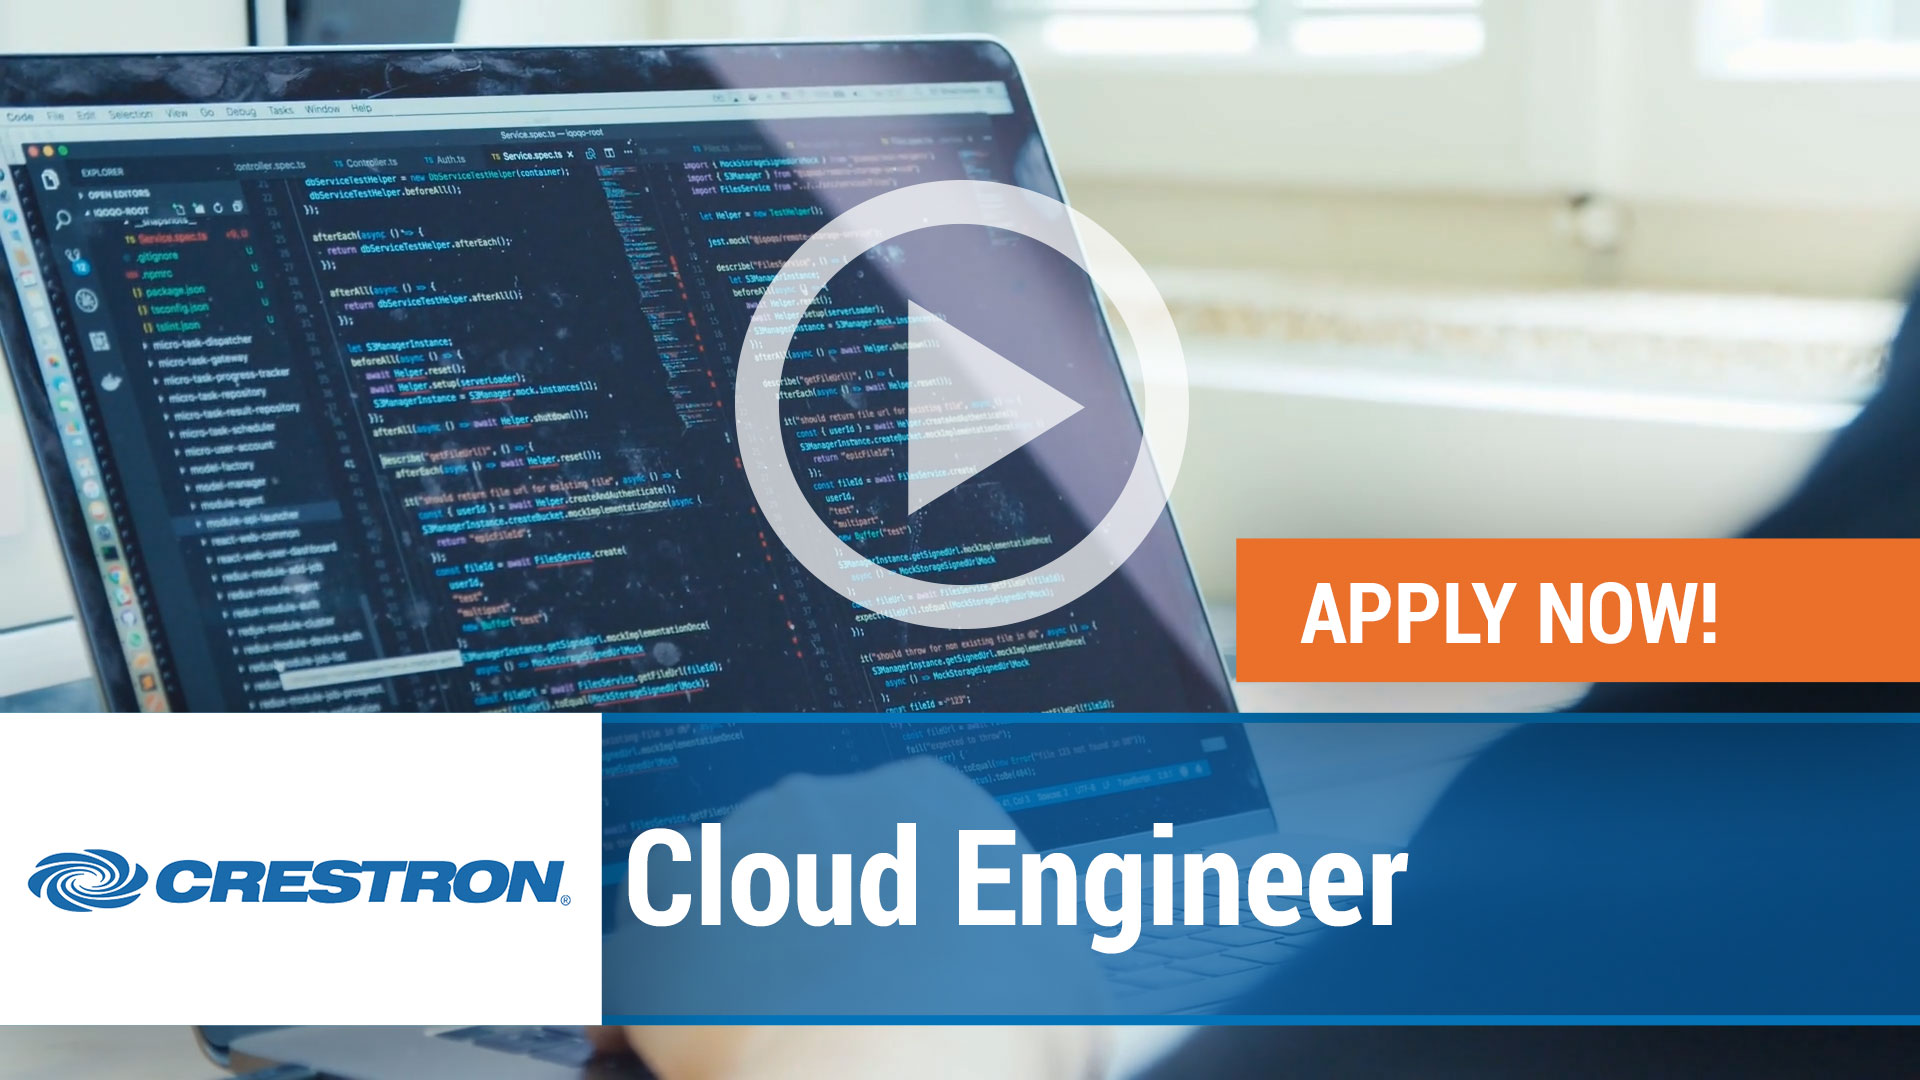 Watch our careers video for available job opening Cloud Engineer in Rockleigh, New Jersey